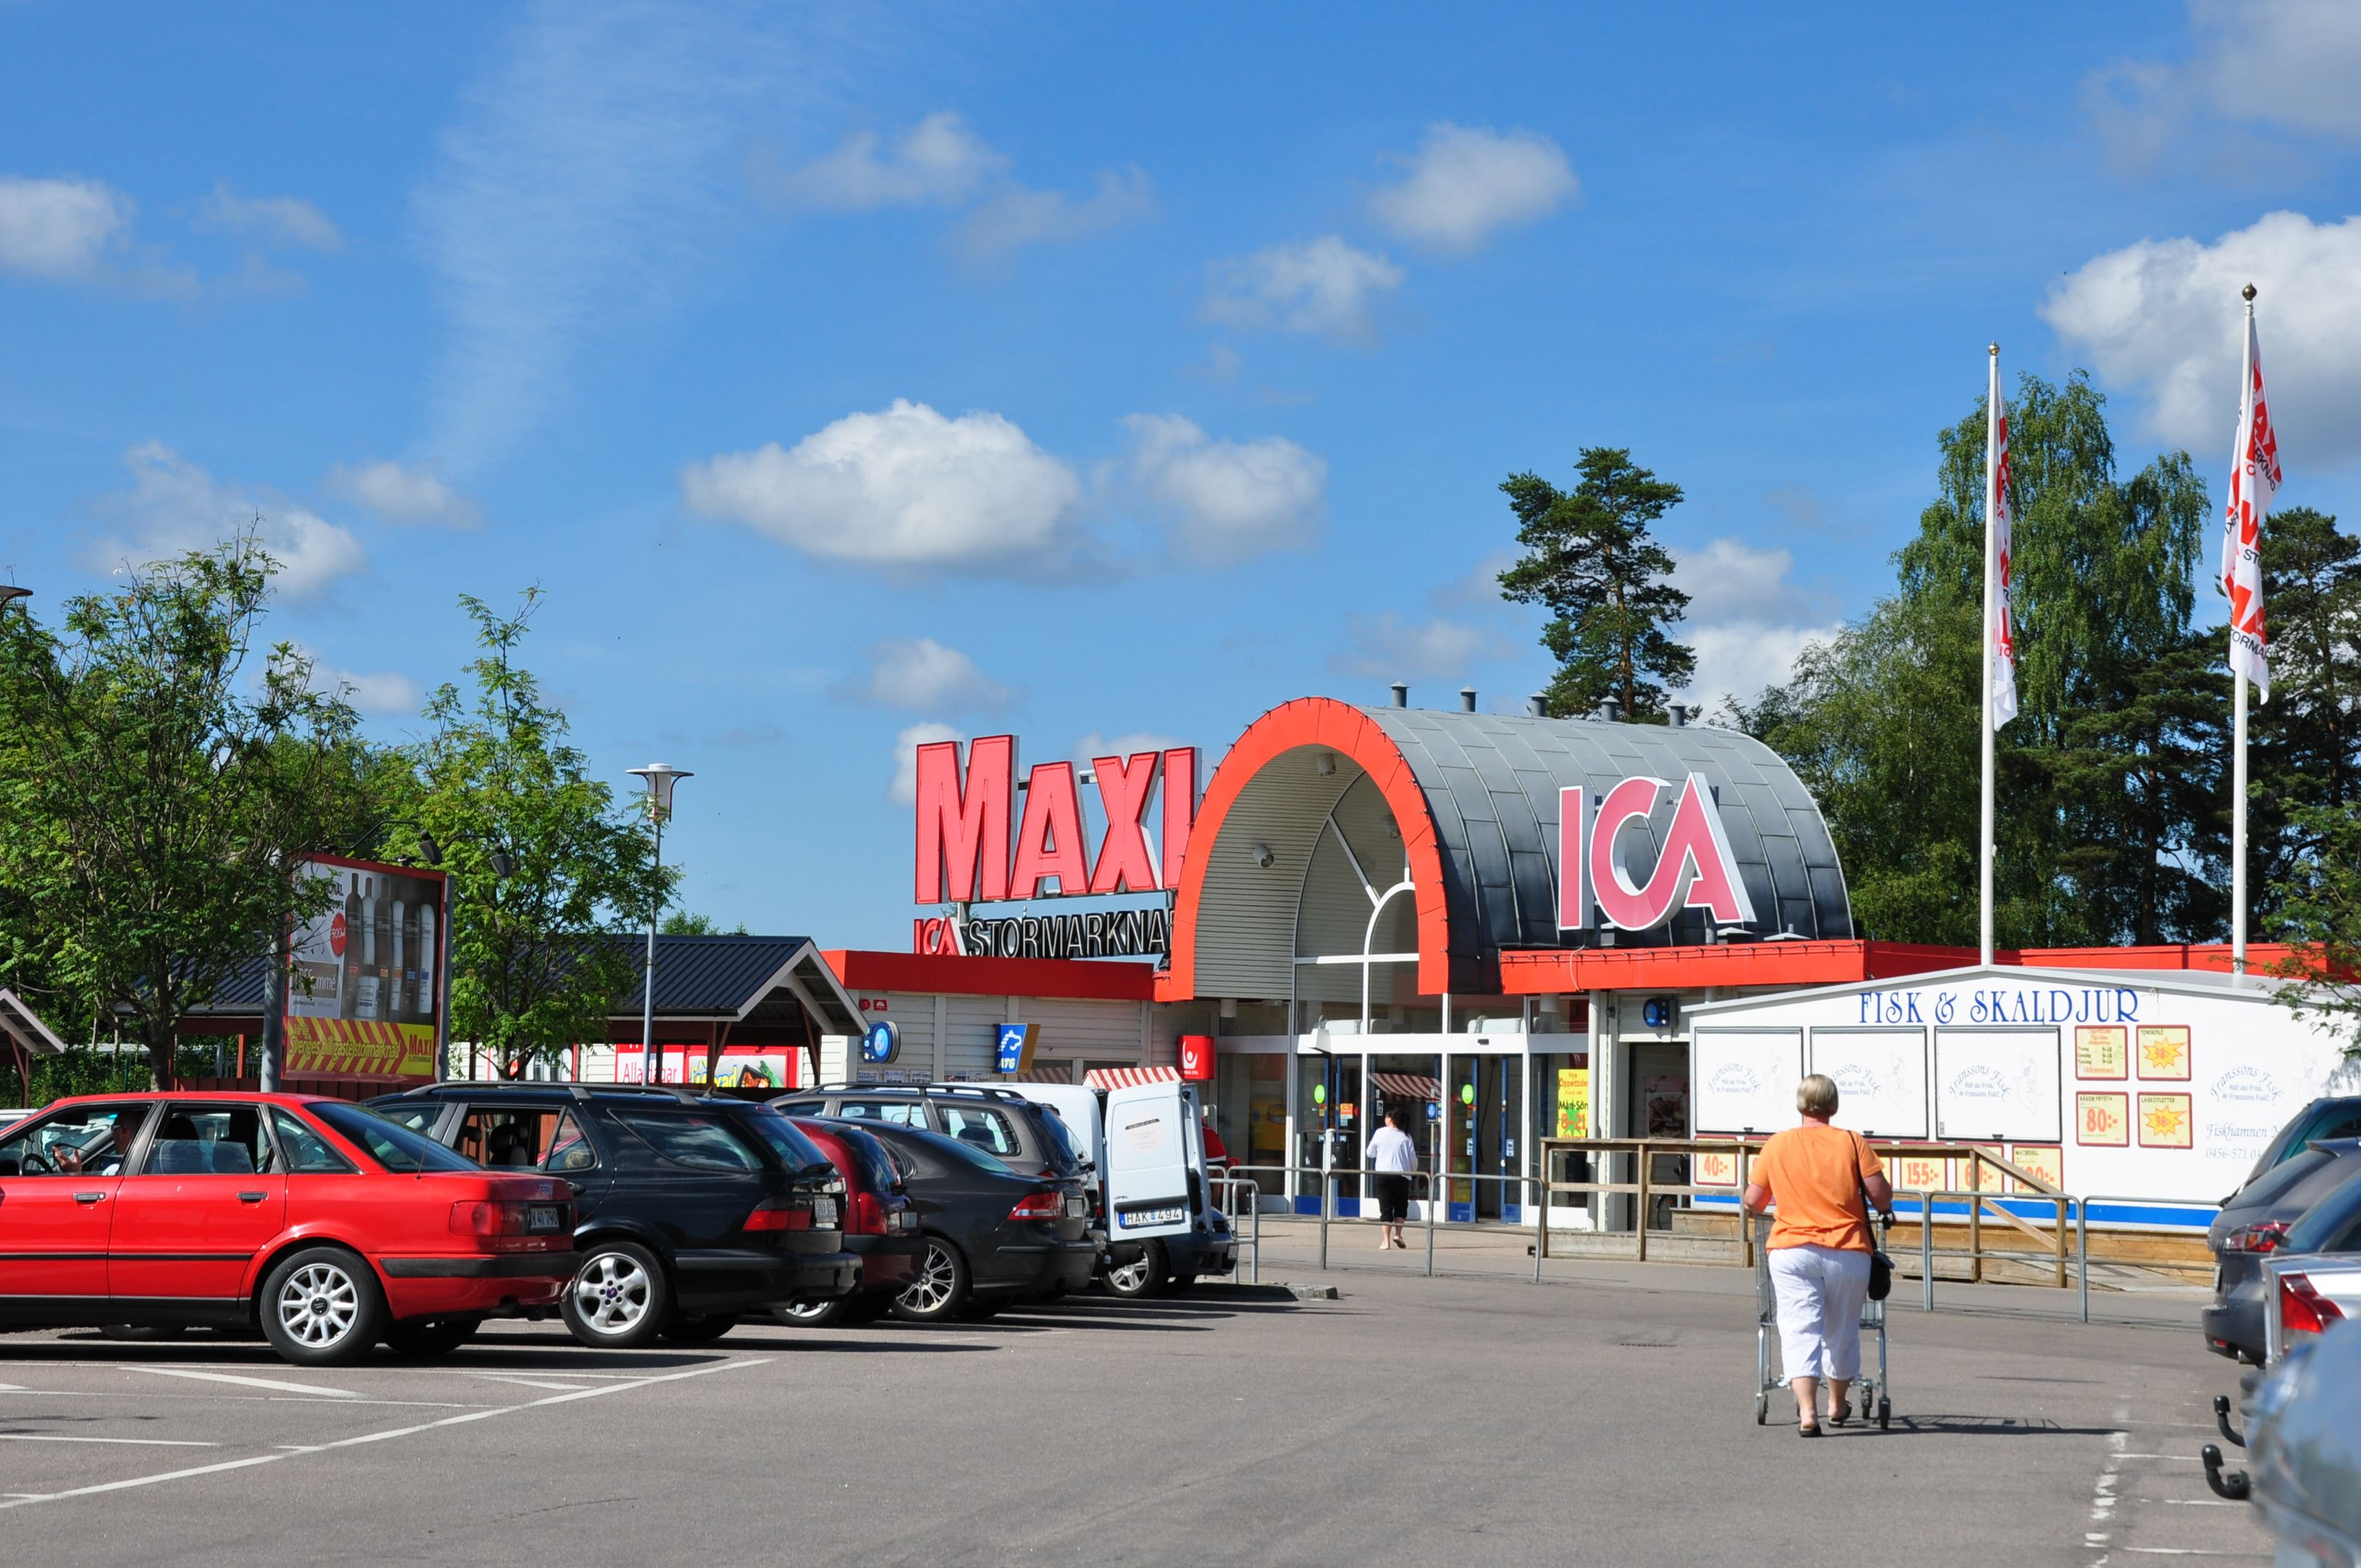 Maxi (grocery store)